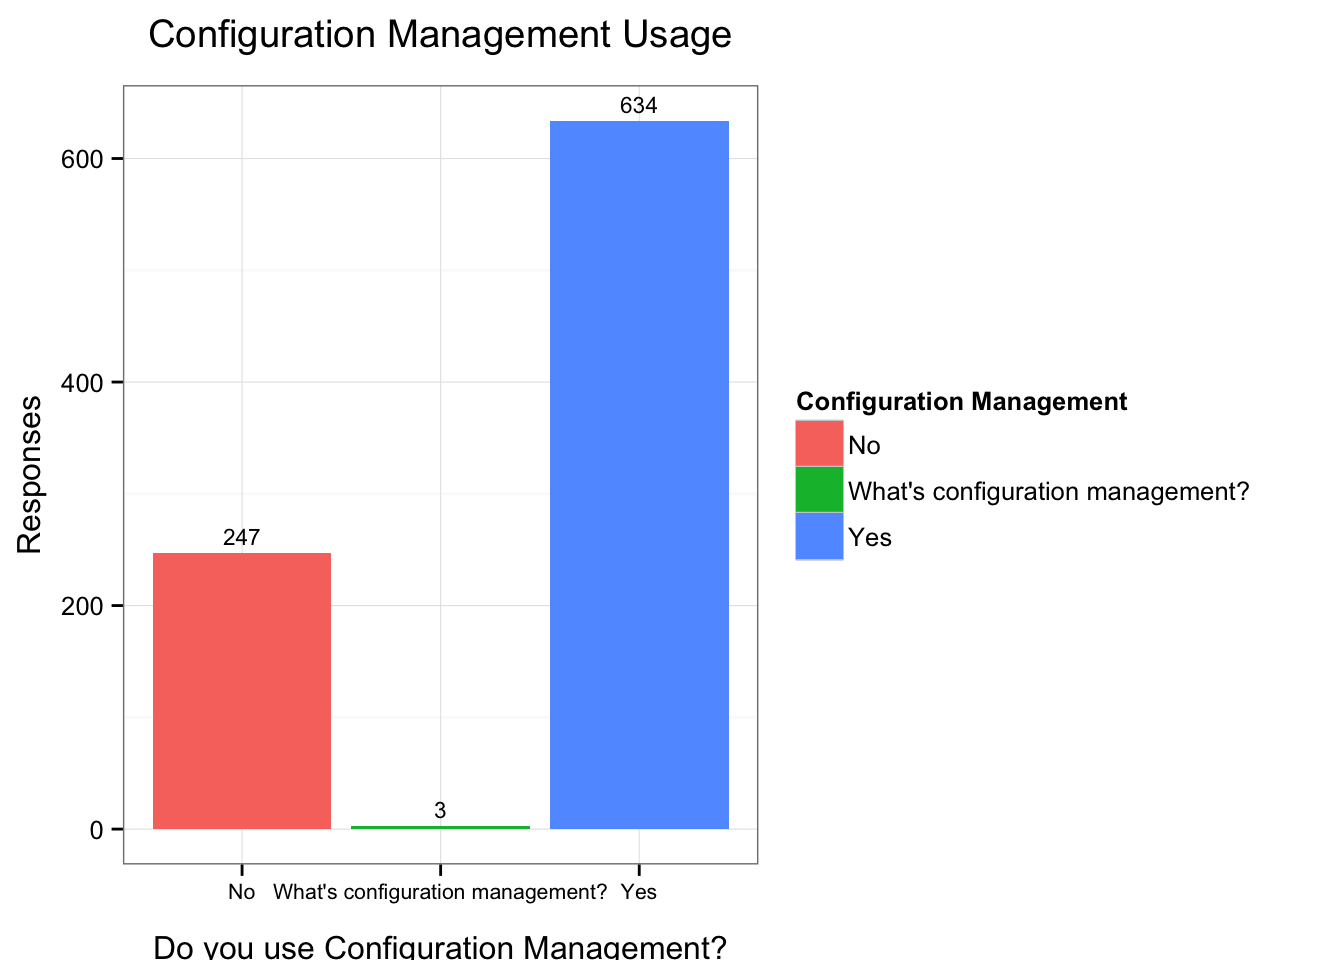 Use of Configuration Management